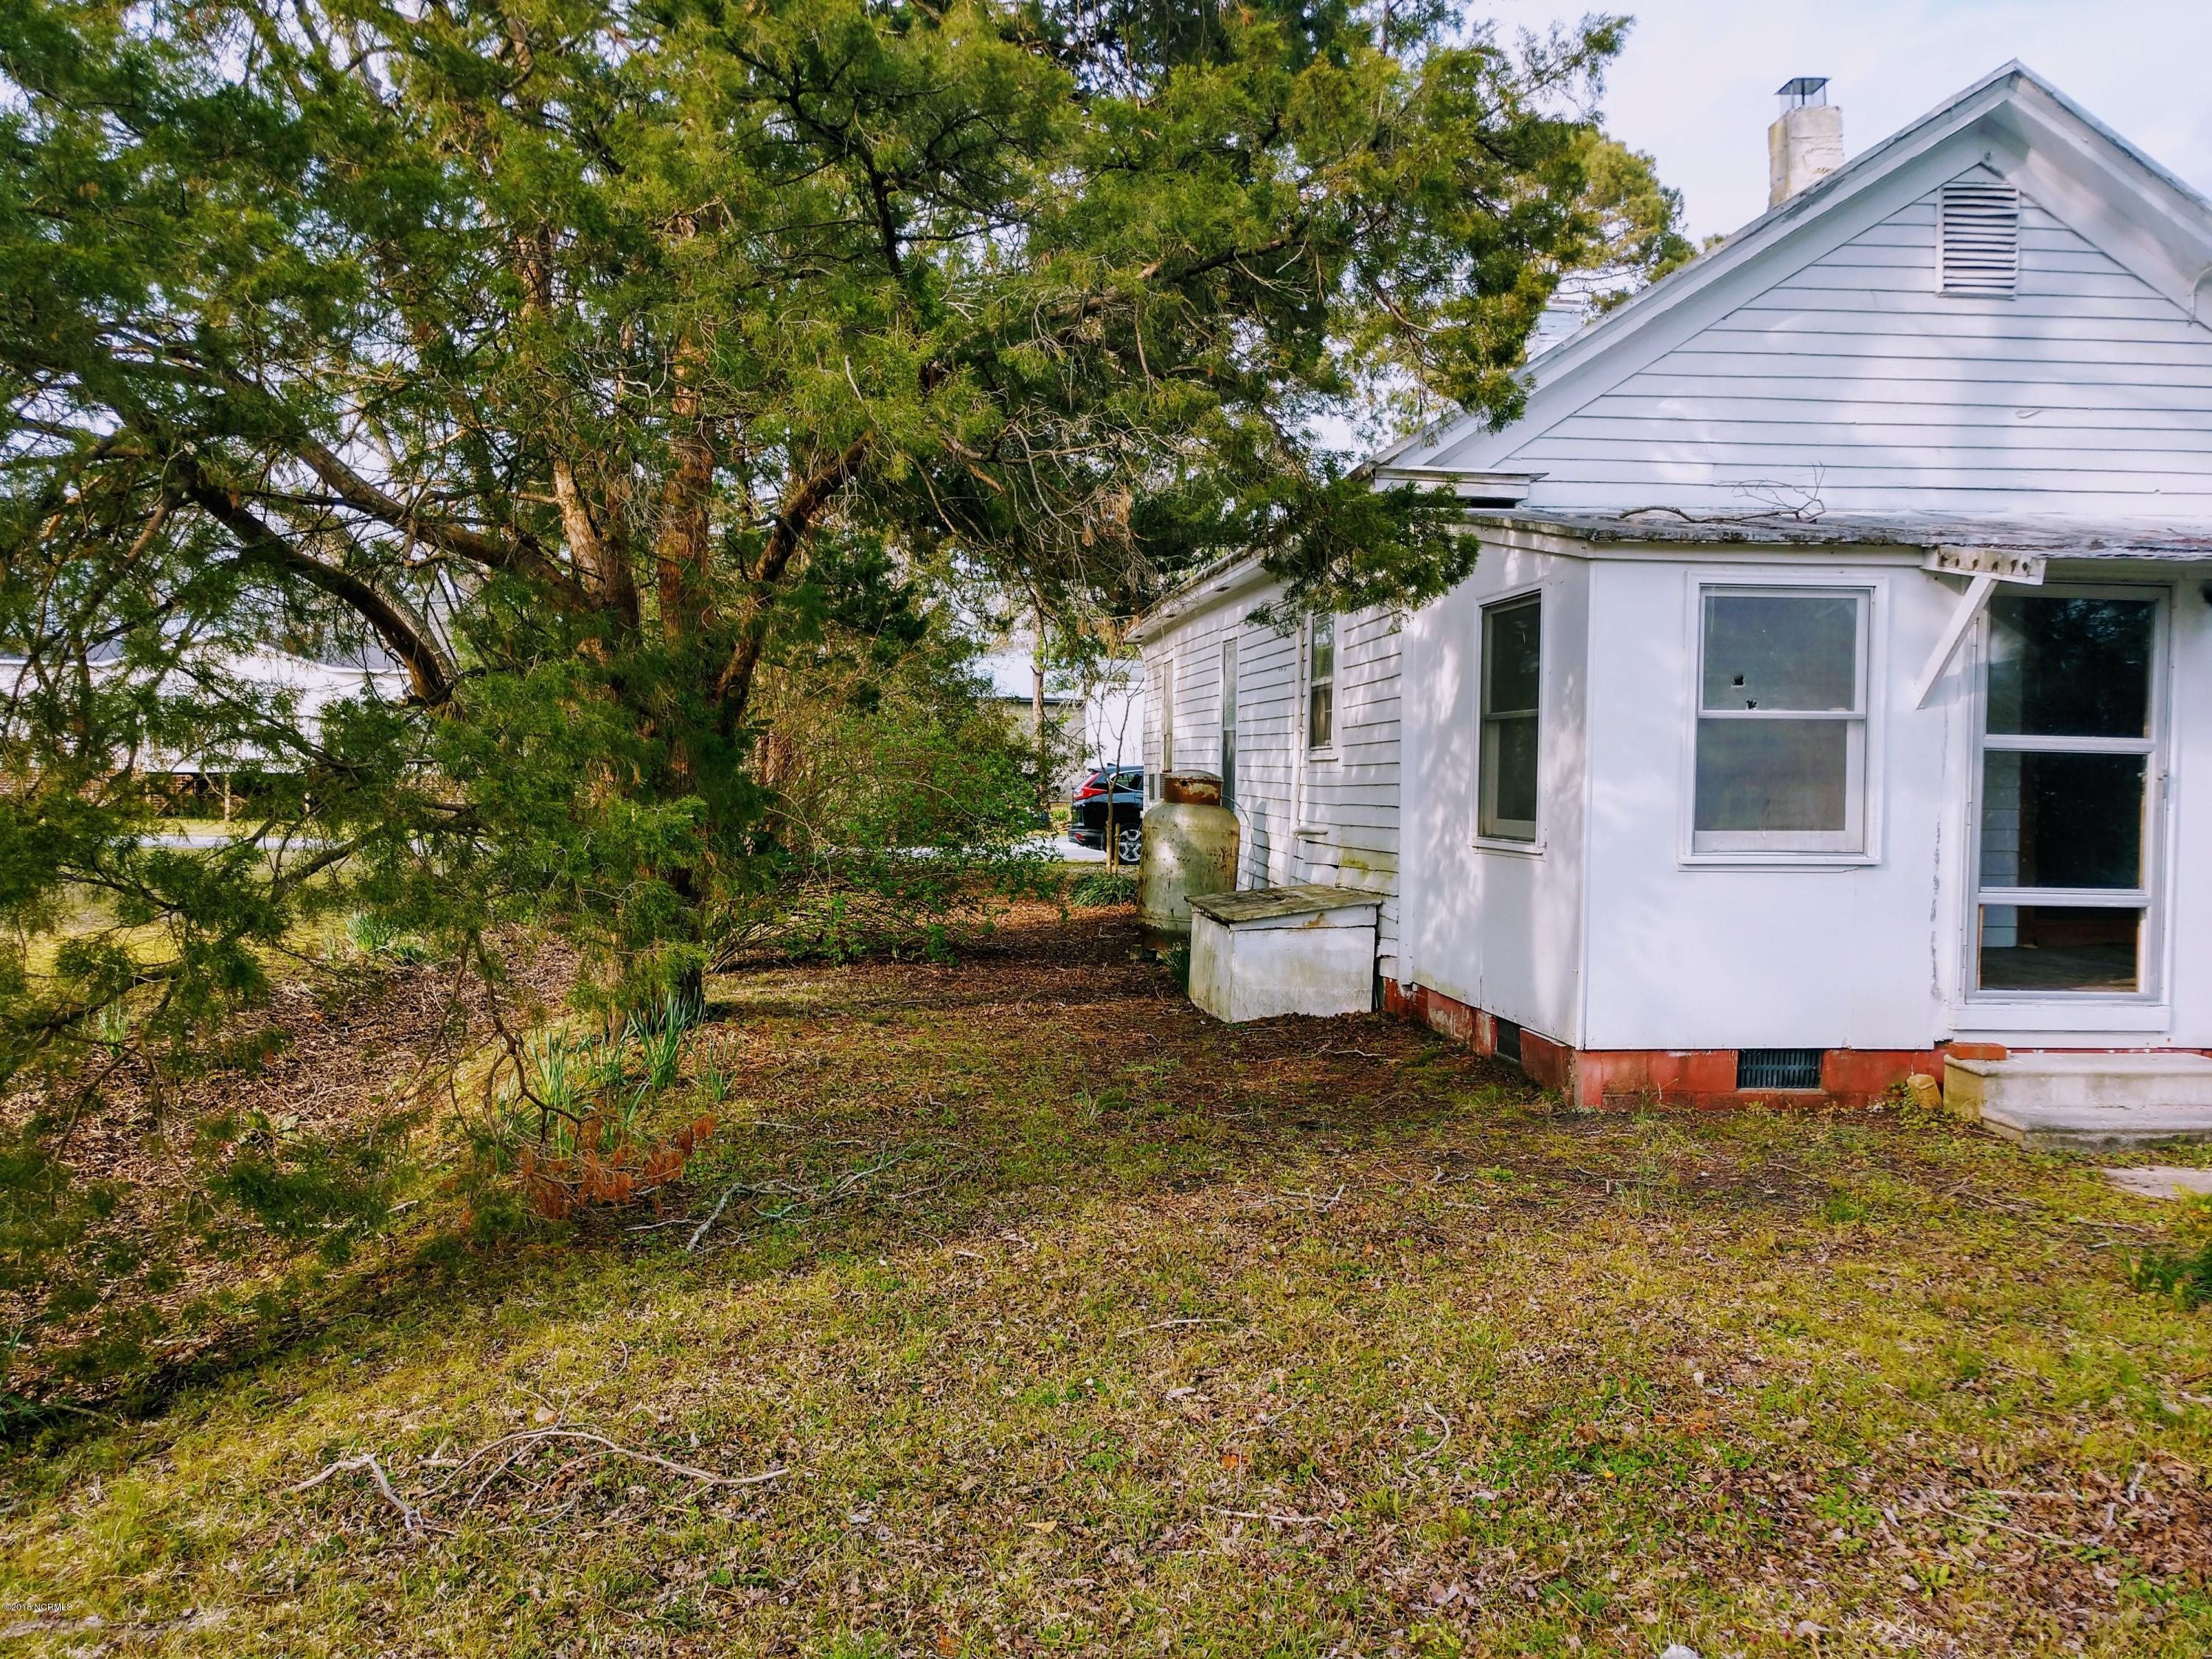 102 Elm Street, Vandemere, North Carolina, 3 Bedrooms Bedrooms, 6 Rooms Rooms,2 BathroomsBathrooms,Single family residence,For sale,Elm,100112089